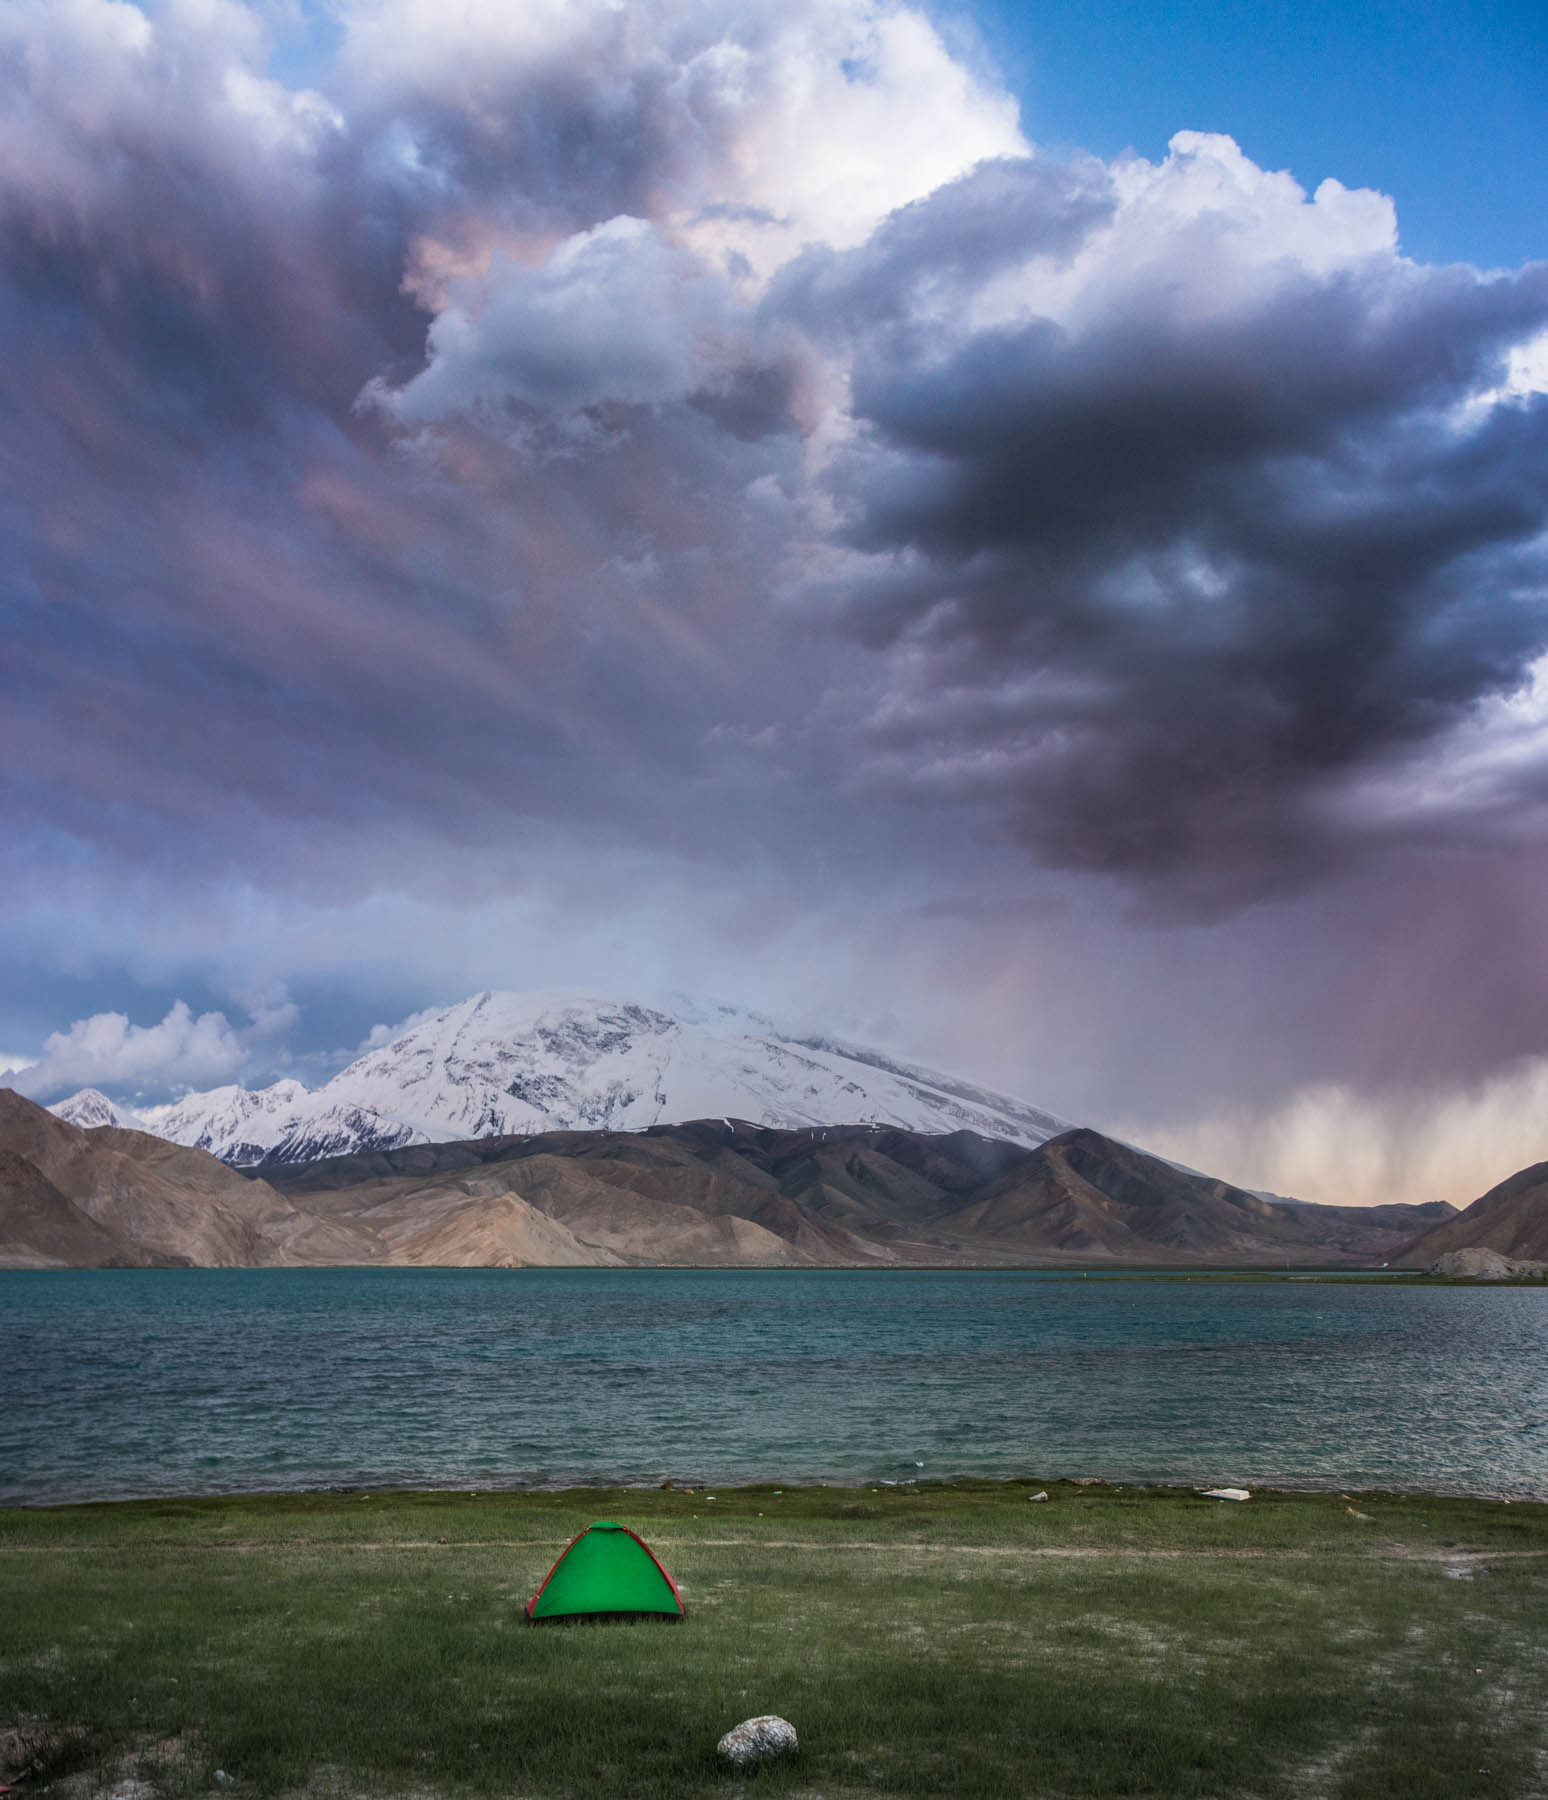 Our teeny tent about to be ravaged by the elements at Karakul Lake in China.